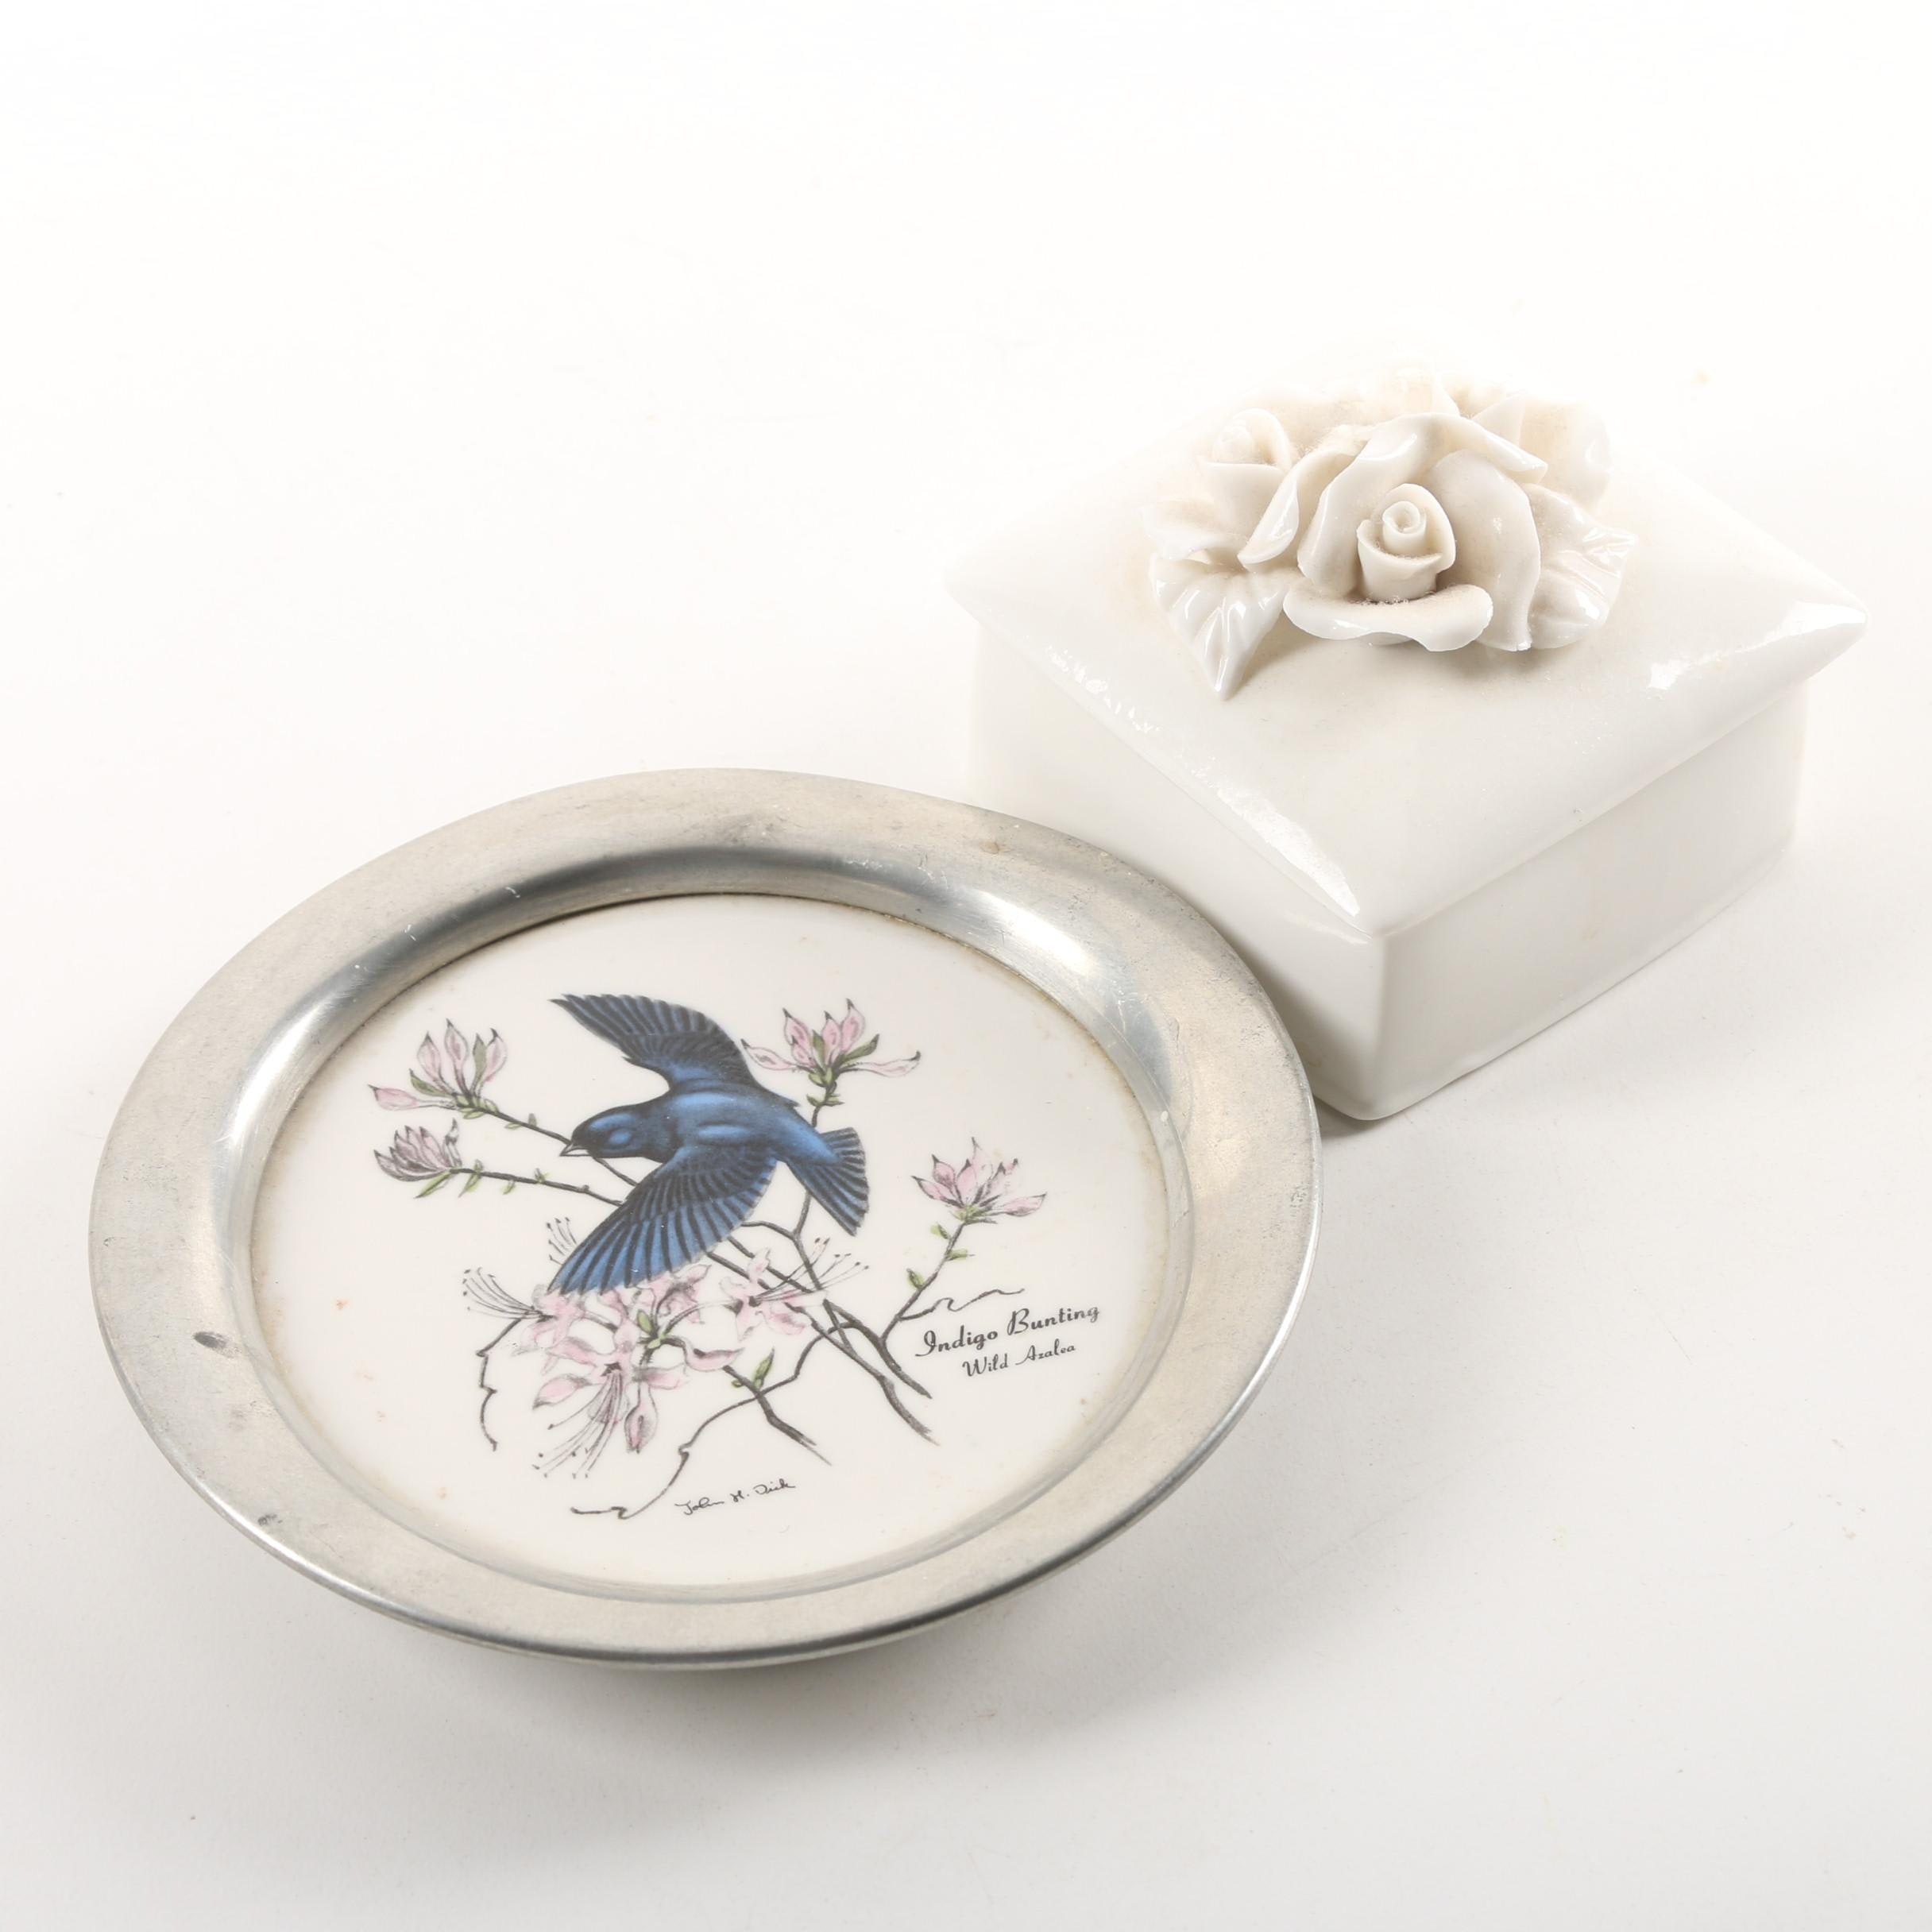 "Reed & Barton ""Indigo Bunting"" Wine Bottle Coaster with Ceramic Trinket Box"